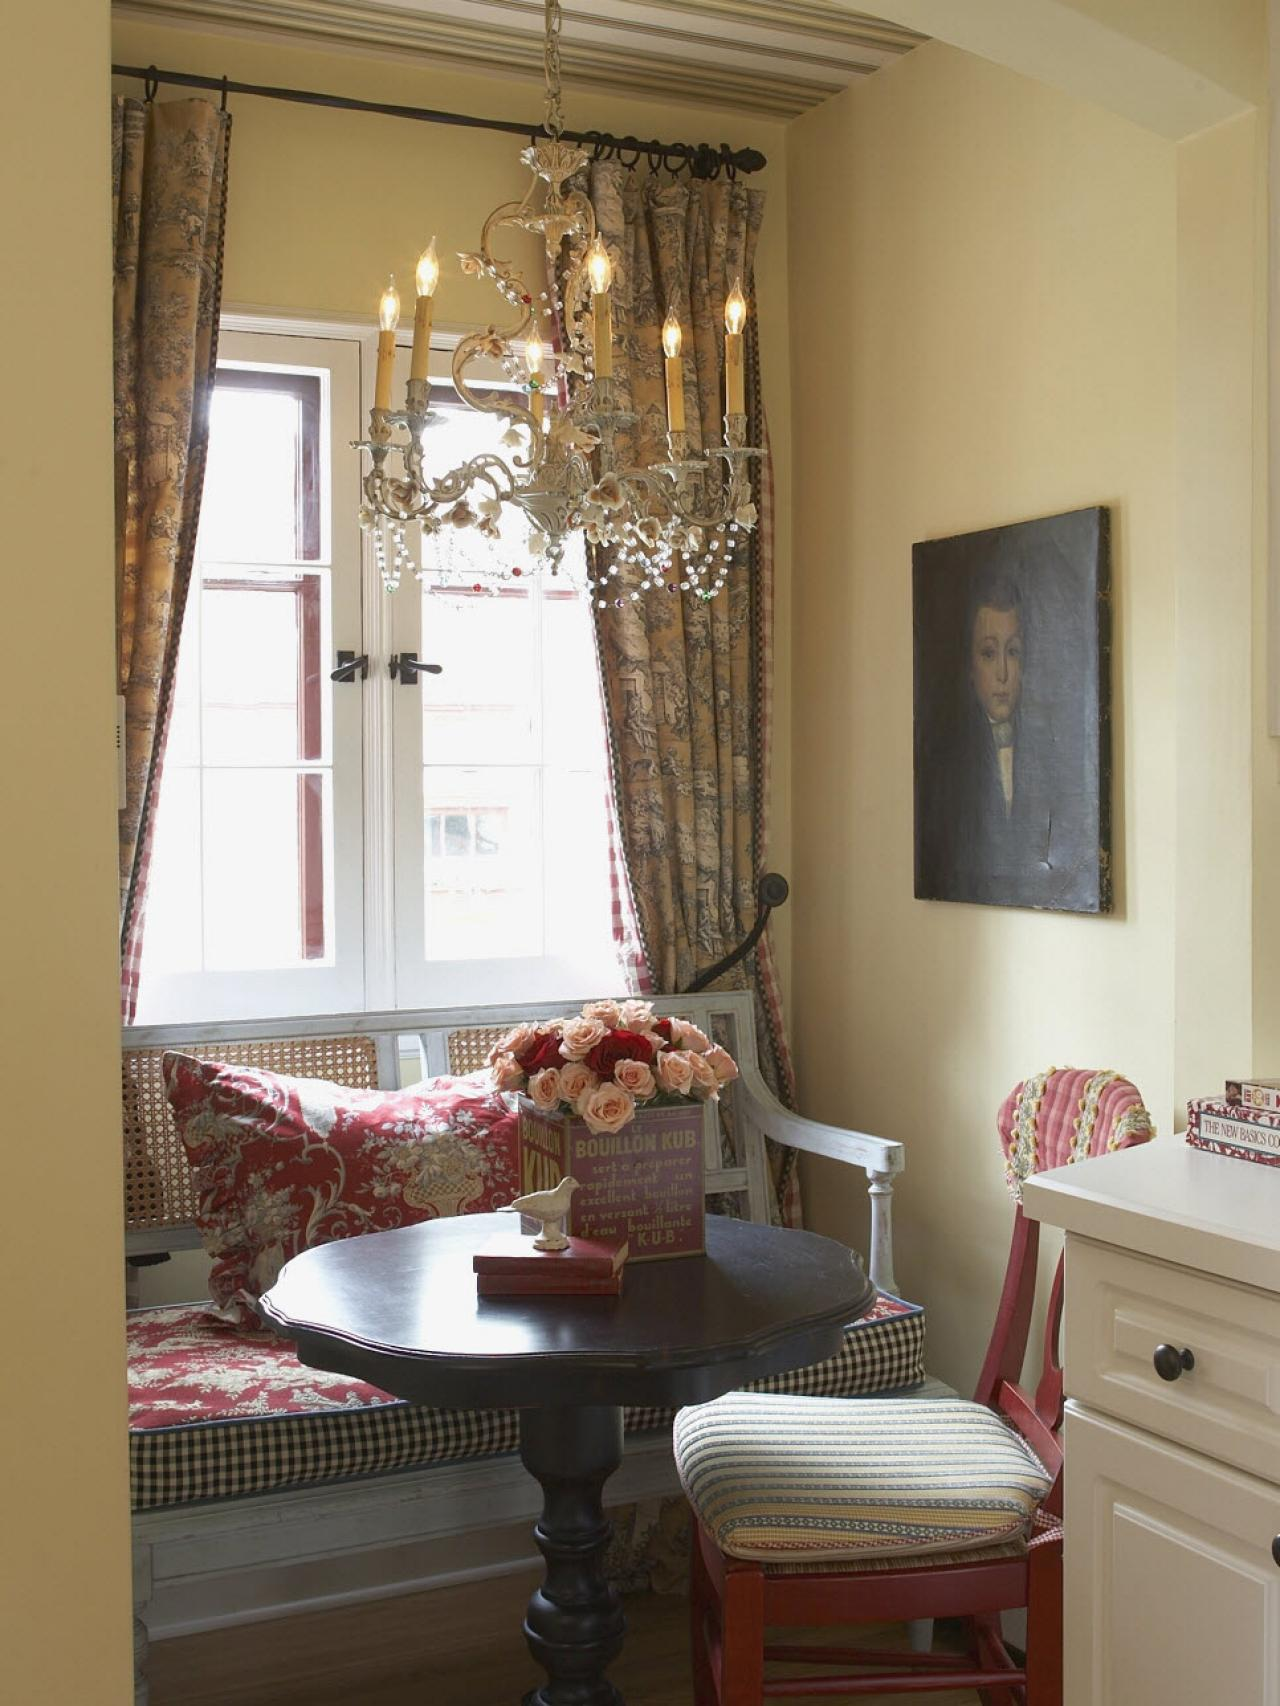 say oui to french country decor interior design styles and col